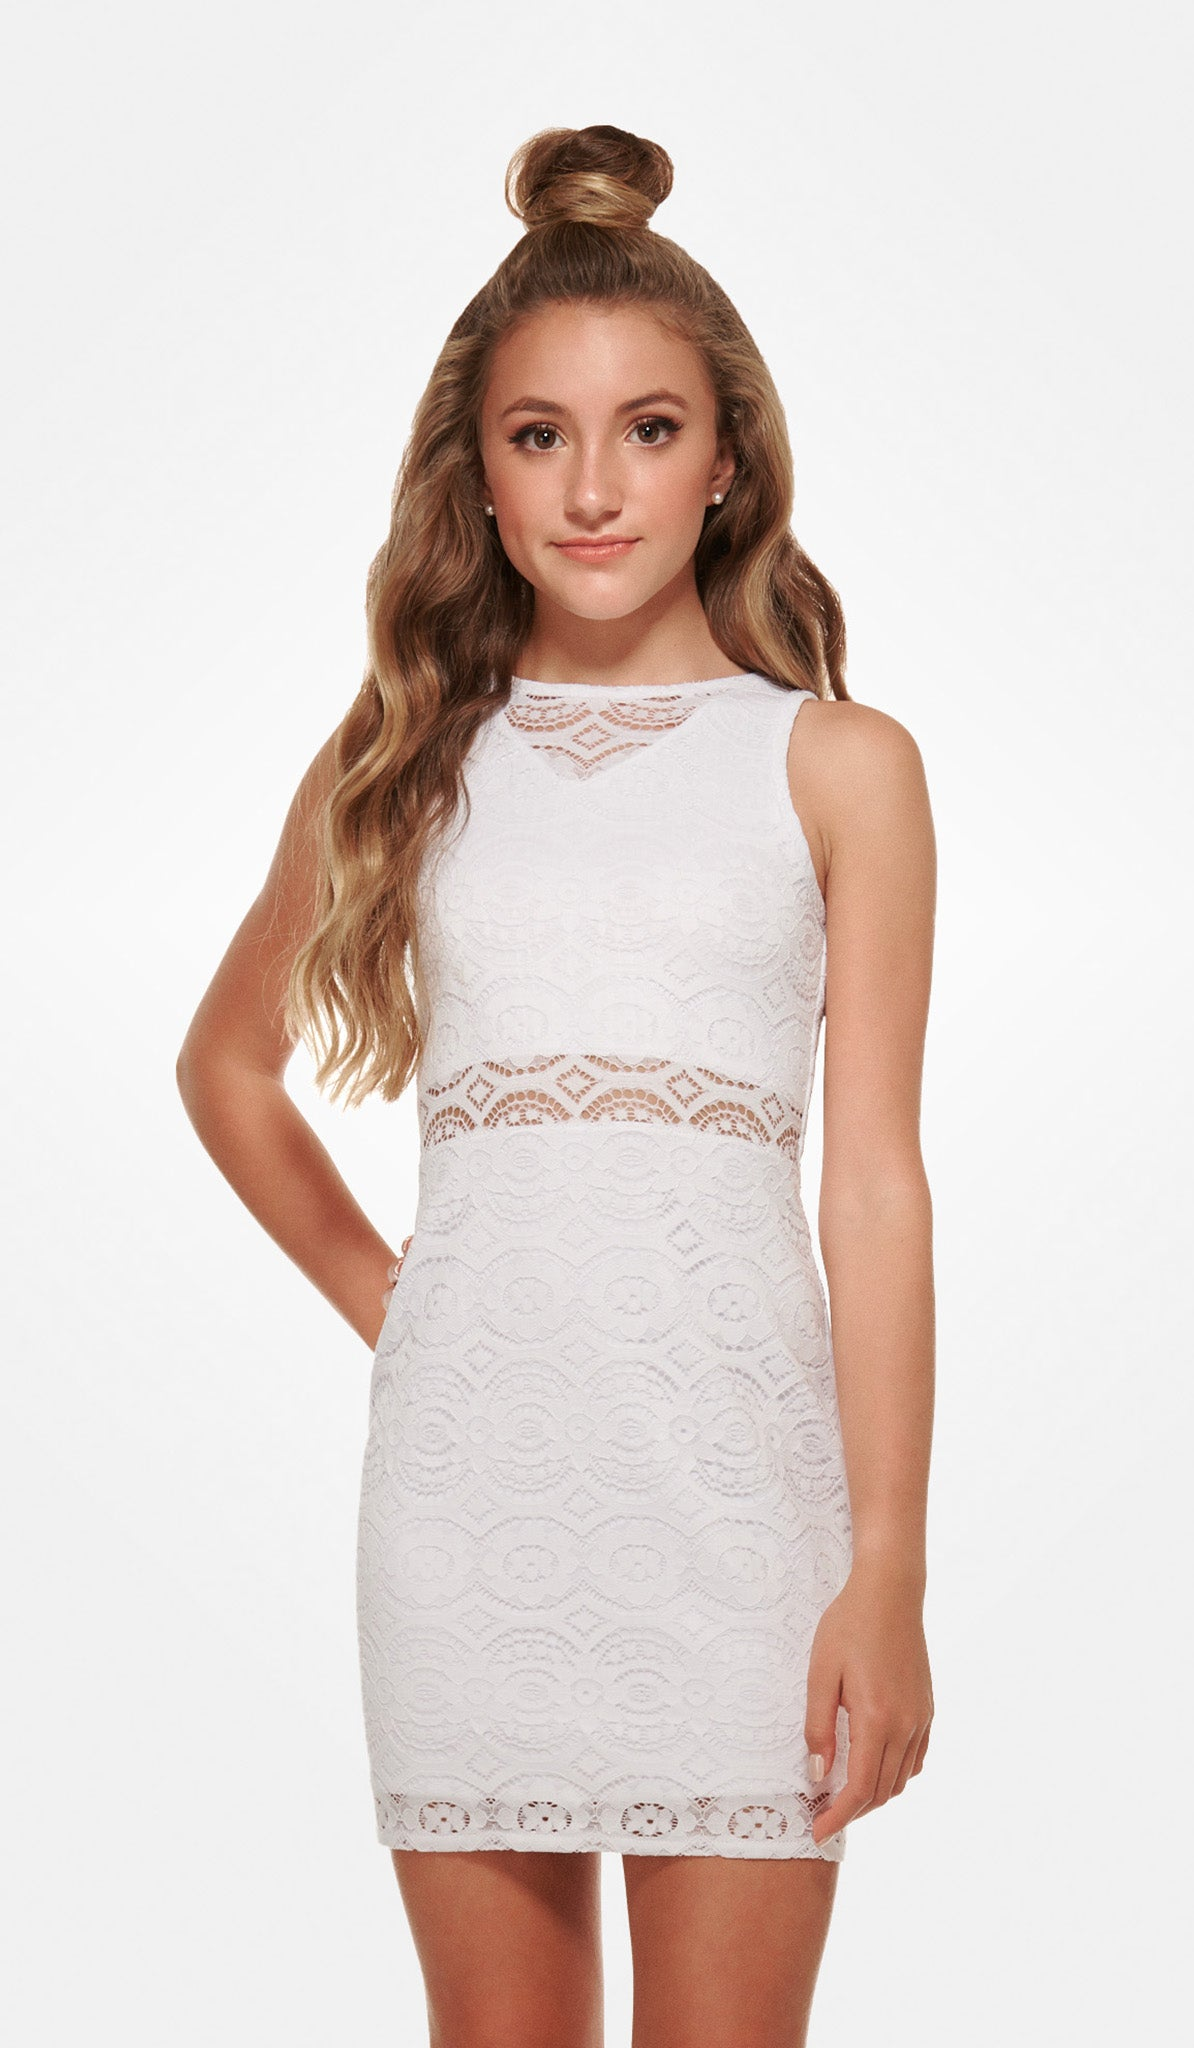 The Sally Miller Adriana Dress - White stretch crochet lace bodycon dress with illusion waist and yoke